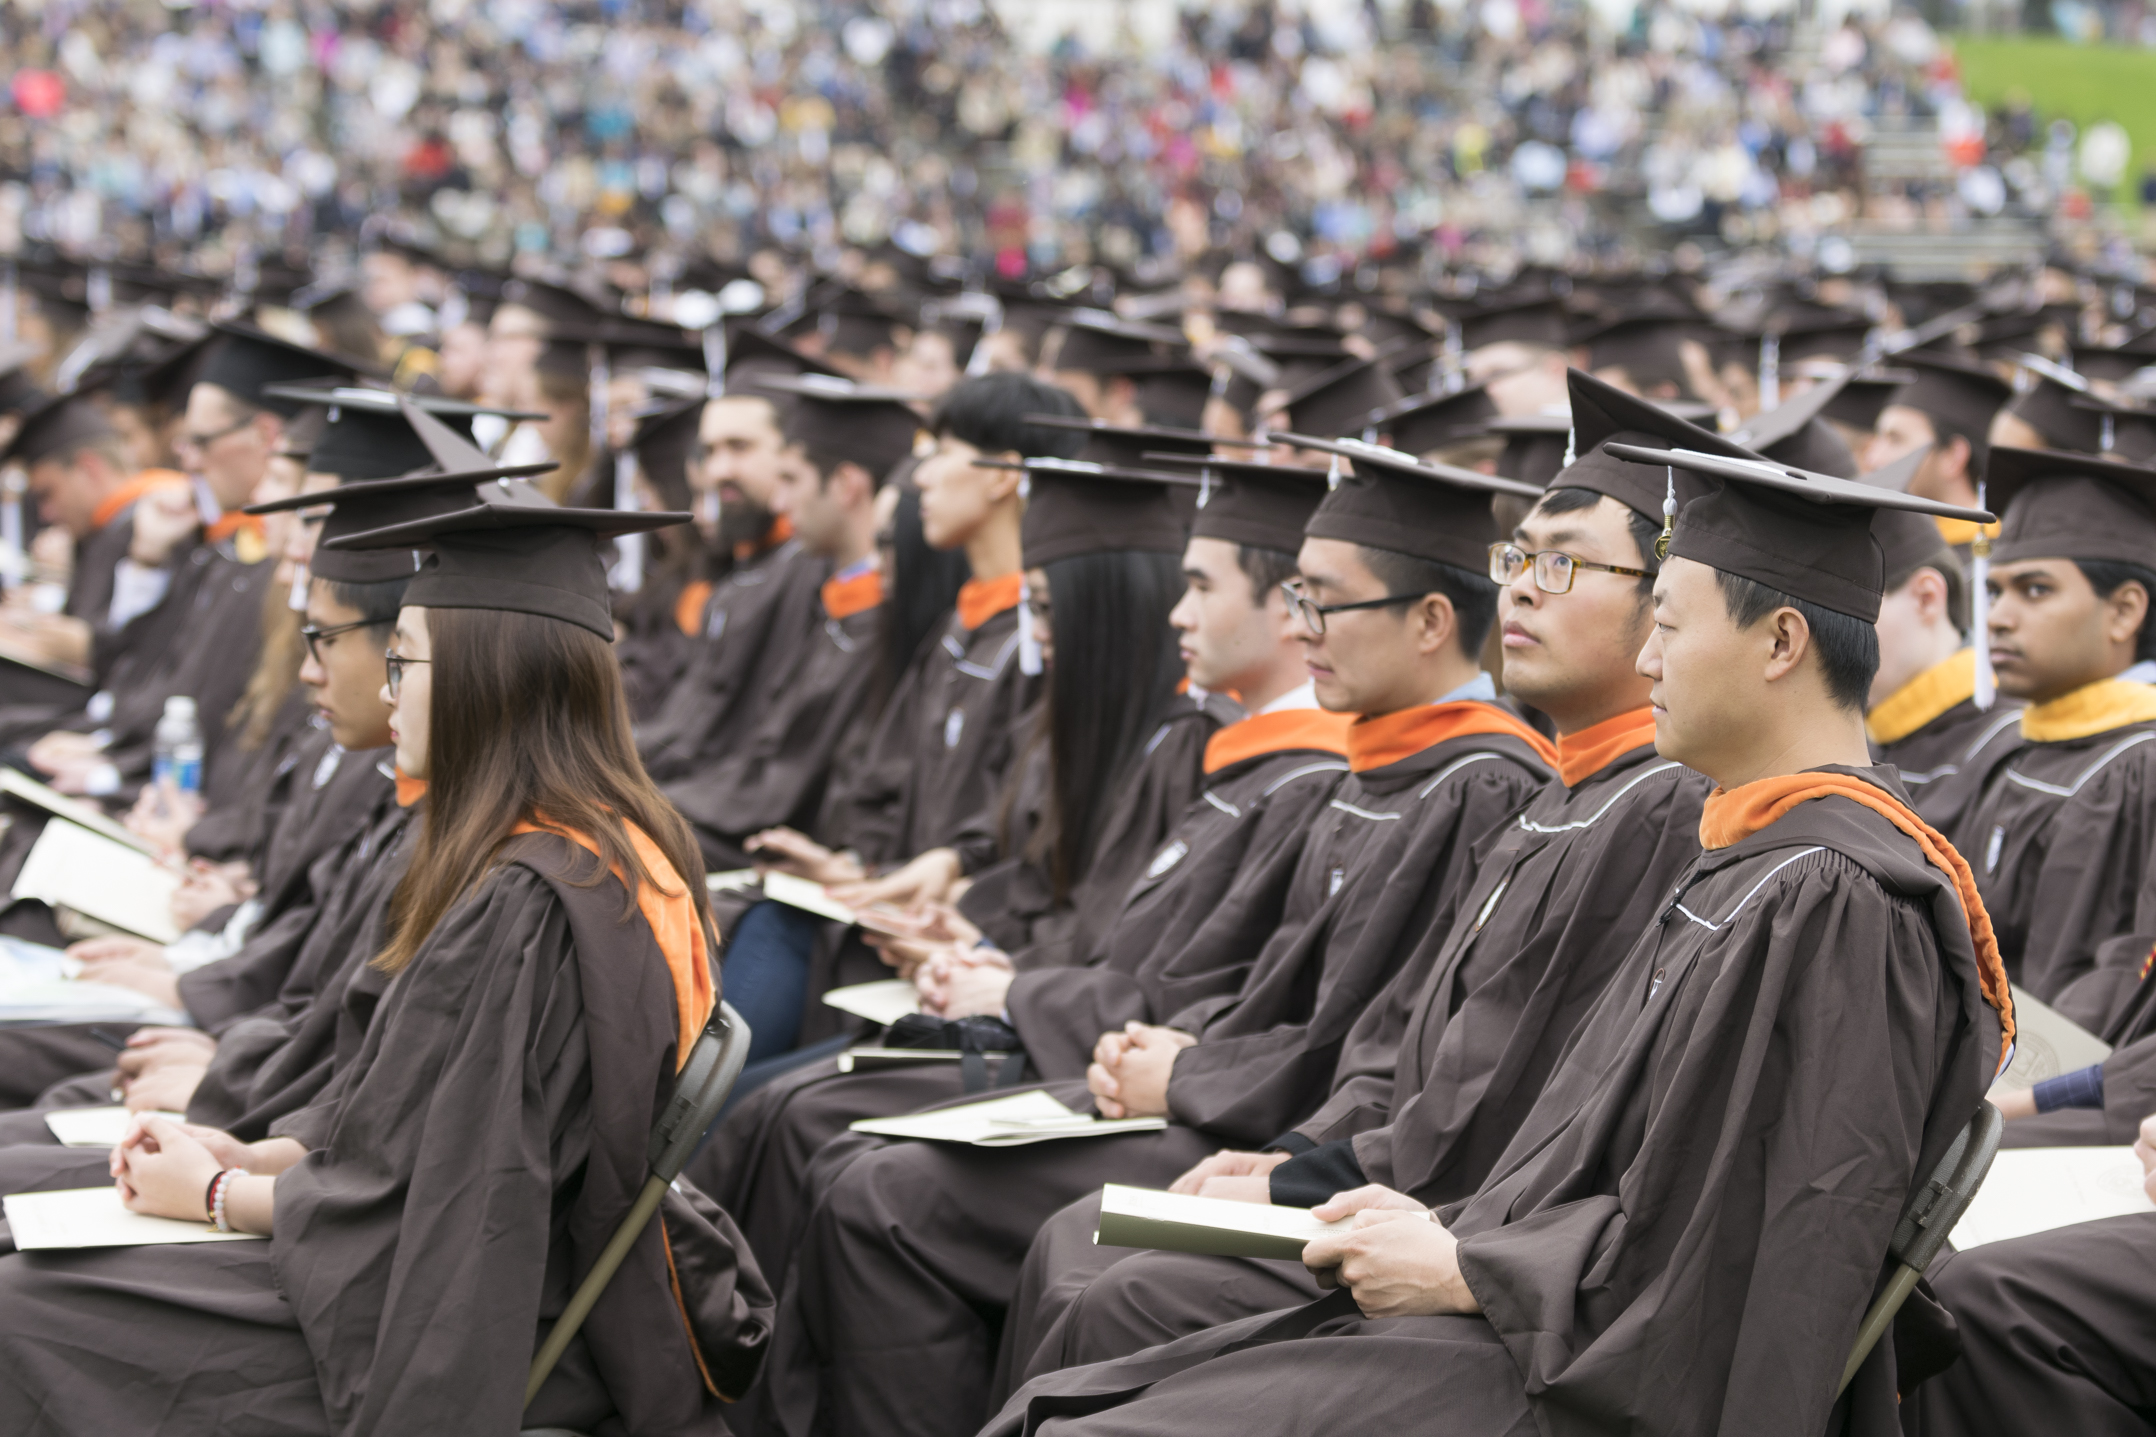 Graduates watch the commencement ceremony from their seats Monday, May 22, 2017, in Goodman Stadium. During President John Simon's address, he said the most popular major among the class of 2017 was finance, followed by mechanical engineering. (Roshan Giyanani/B&W Staff)